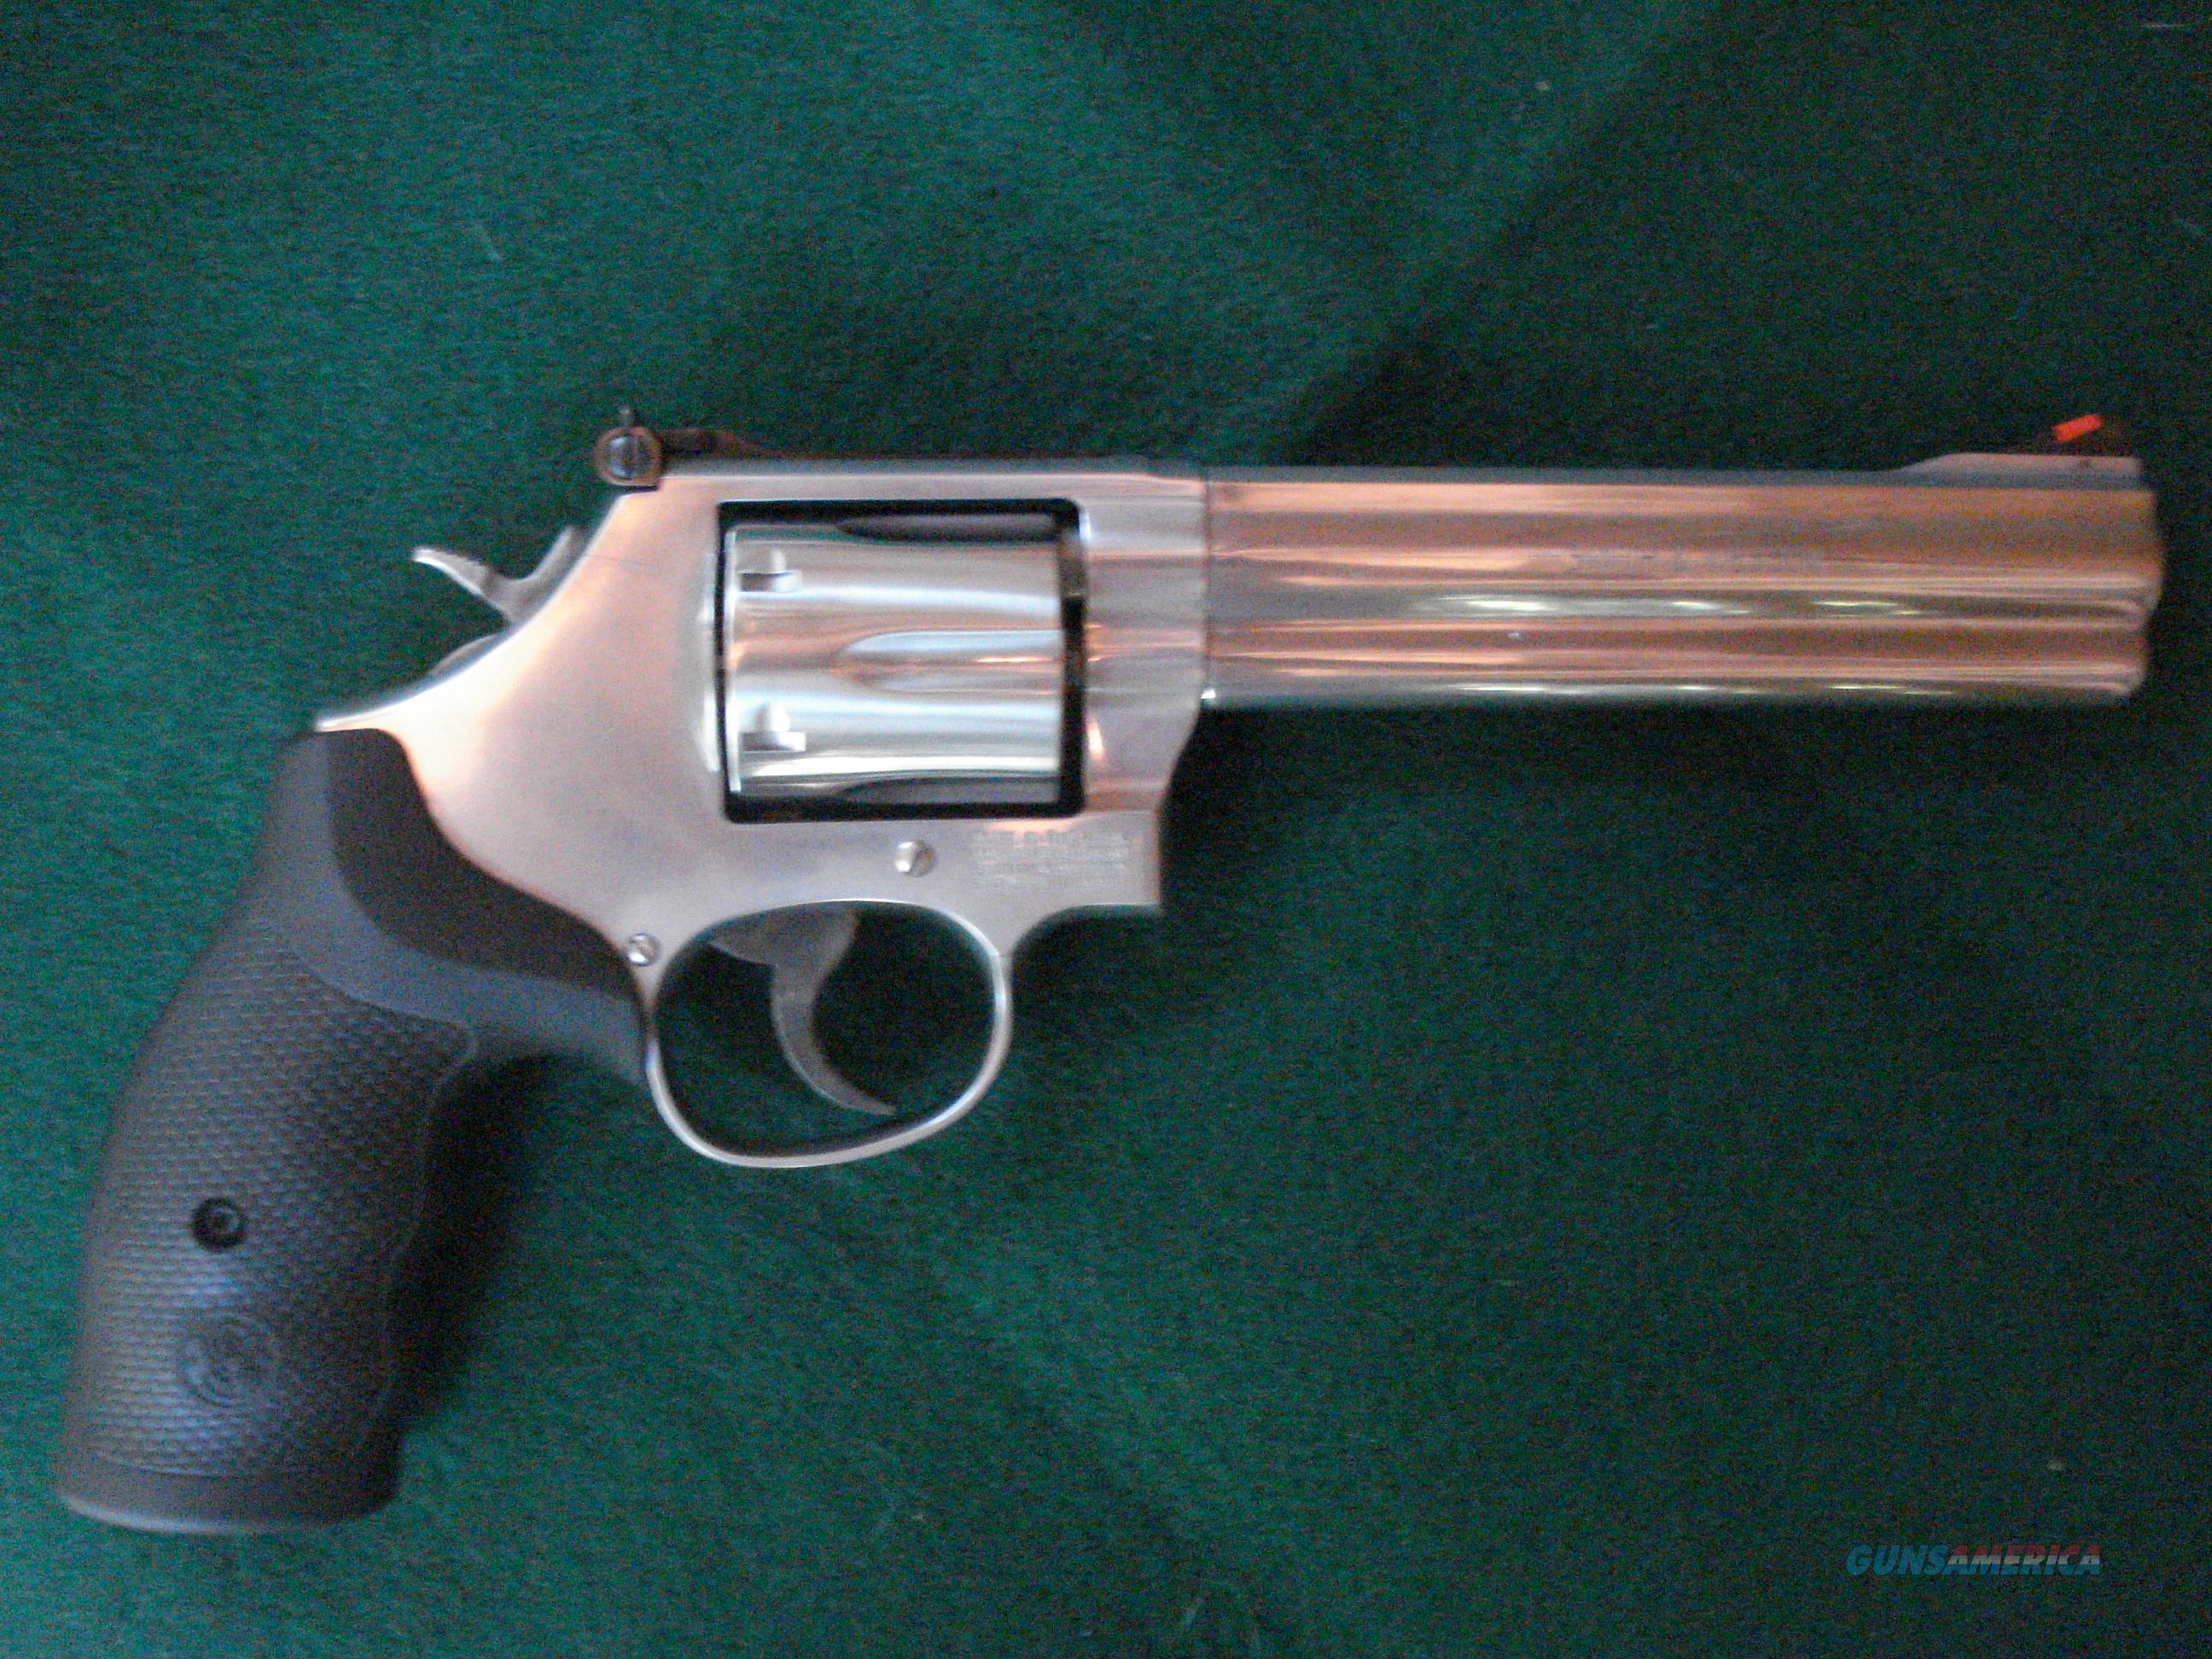 686 - 6 NIB  with new Barsony & Bianchi holsters and walnut grips  Guns > Pistols > Smith & Wesson Revolvers > Full Frame Revolver